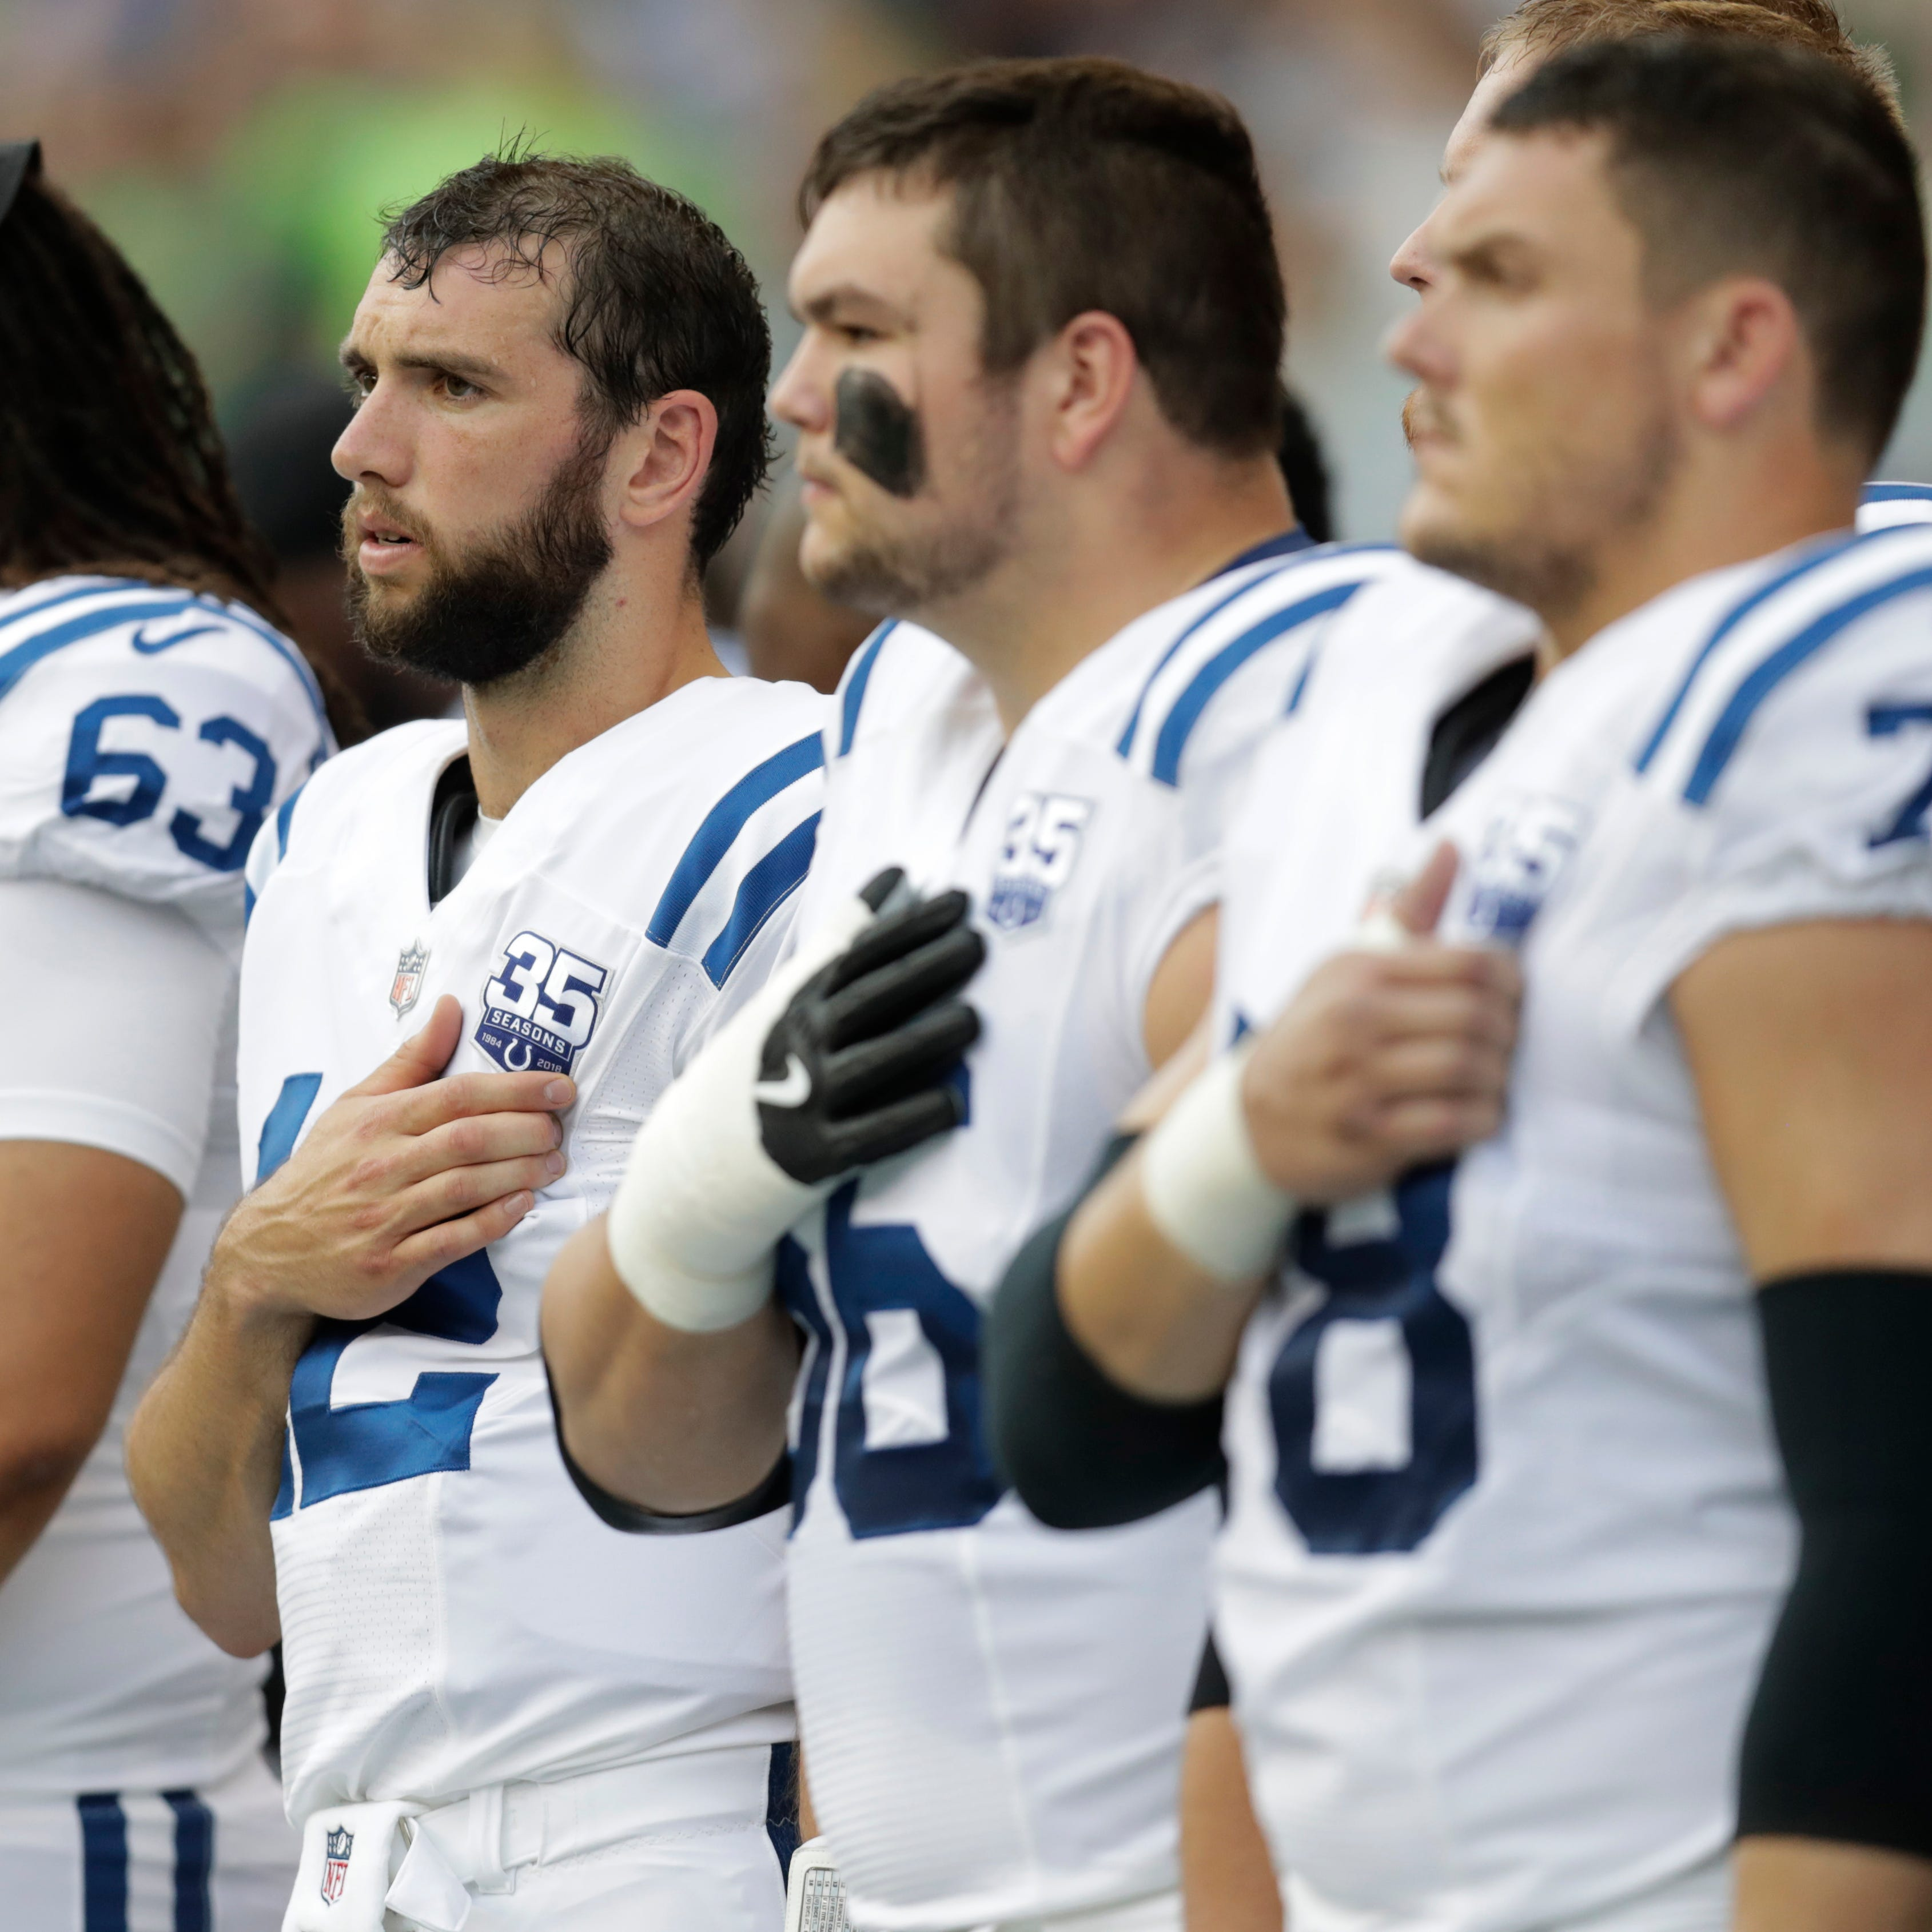 3 Seahawks players leave field during national anthem against Colts